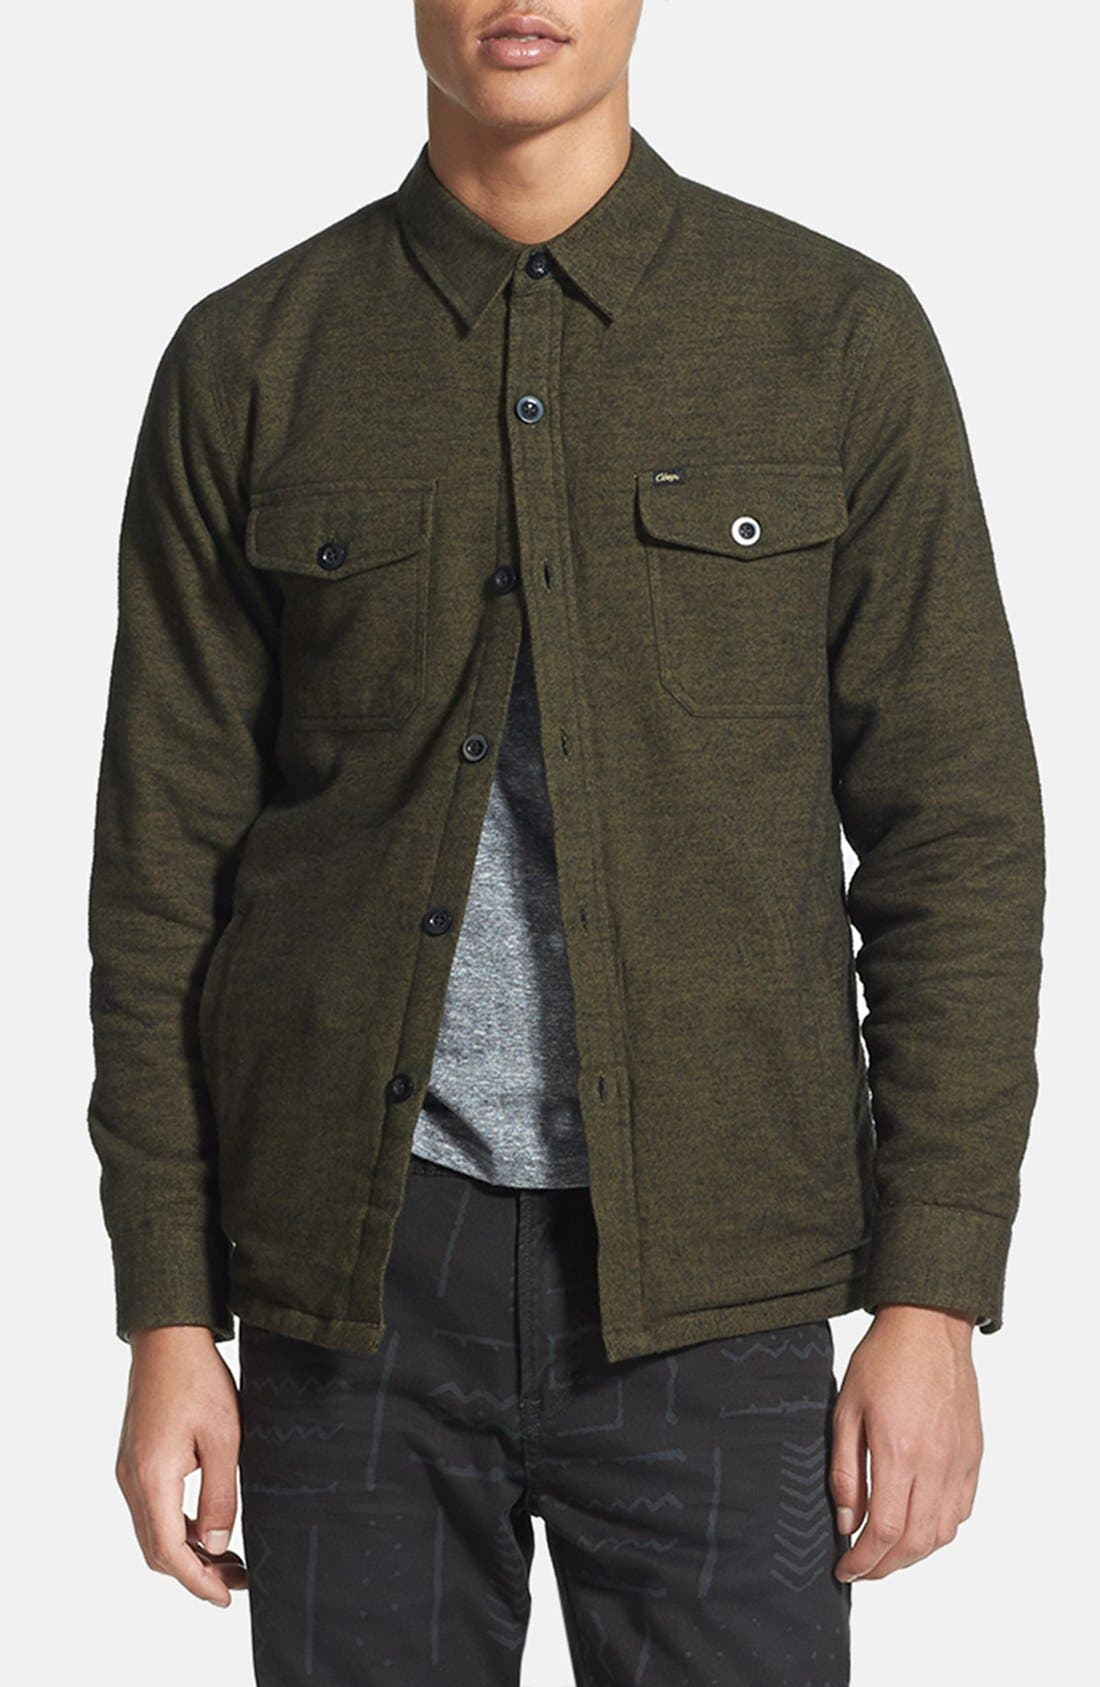 Main Image - Obey 'Field Master' Lightweight Cotton Flannel Jacket